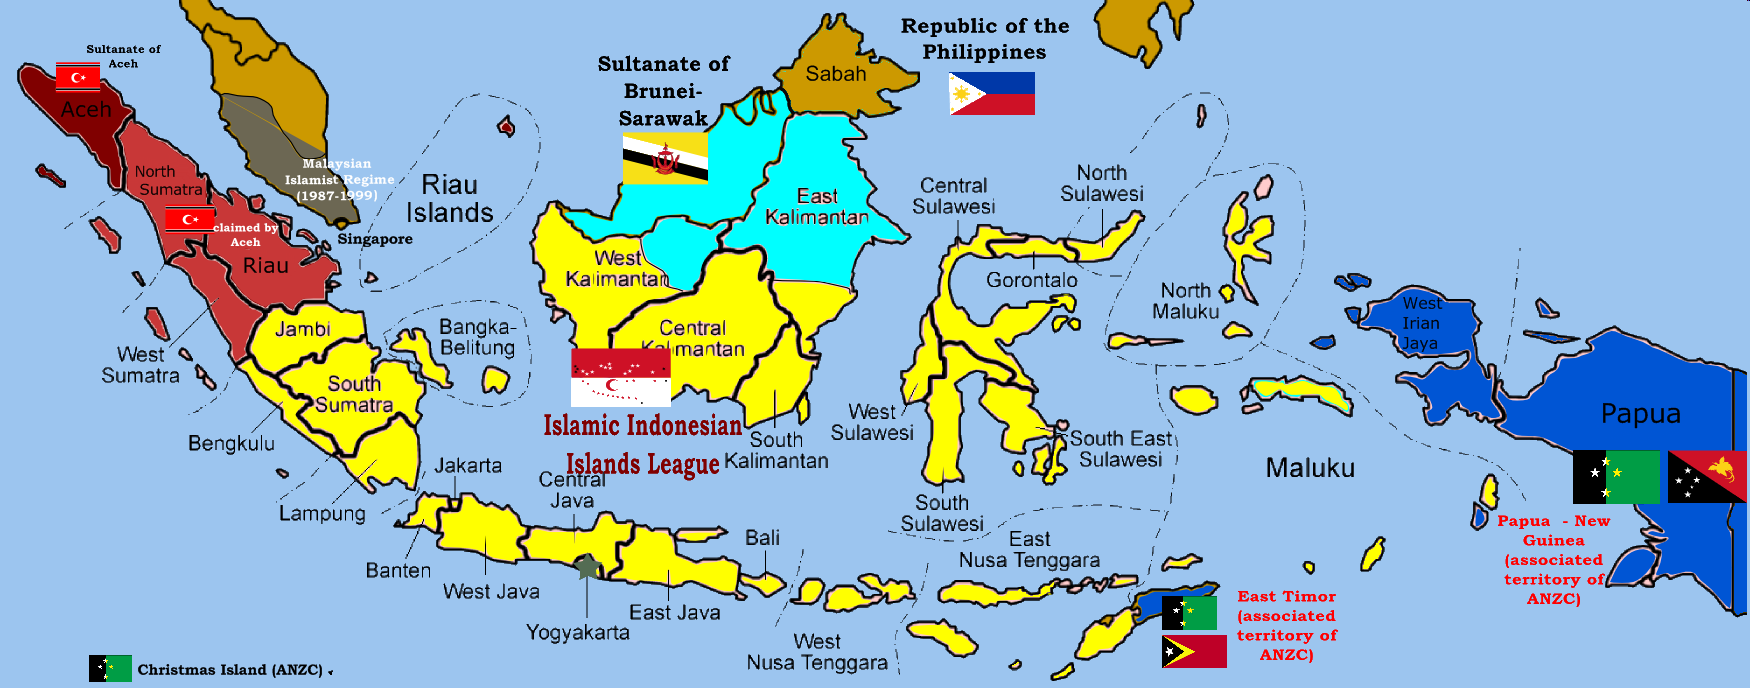 Image indonesian region political 2008 1983doomsdayg indonesian region political 2008 1983doomsdayg gumiabroncs Gallery